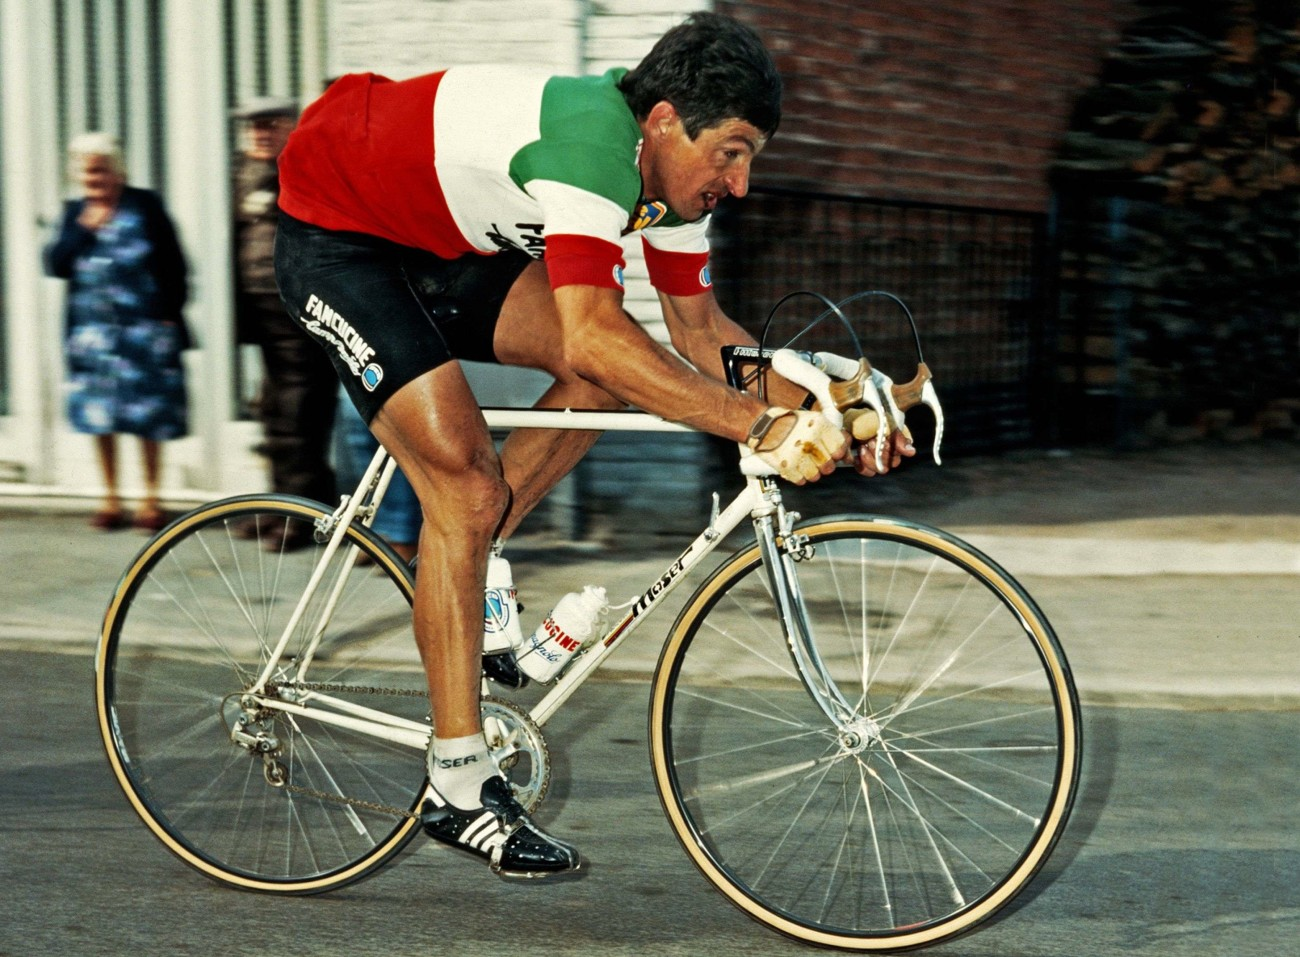 d1c59ab76 He also went on to win the Giro d Italia in 1984. Track was a strong  discipline for Moser